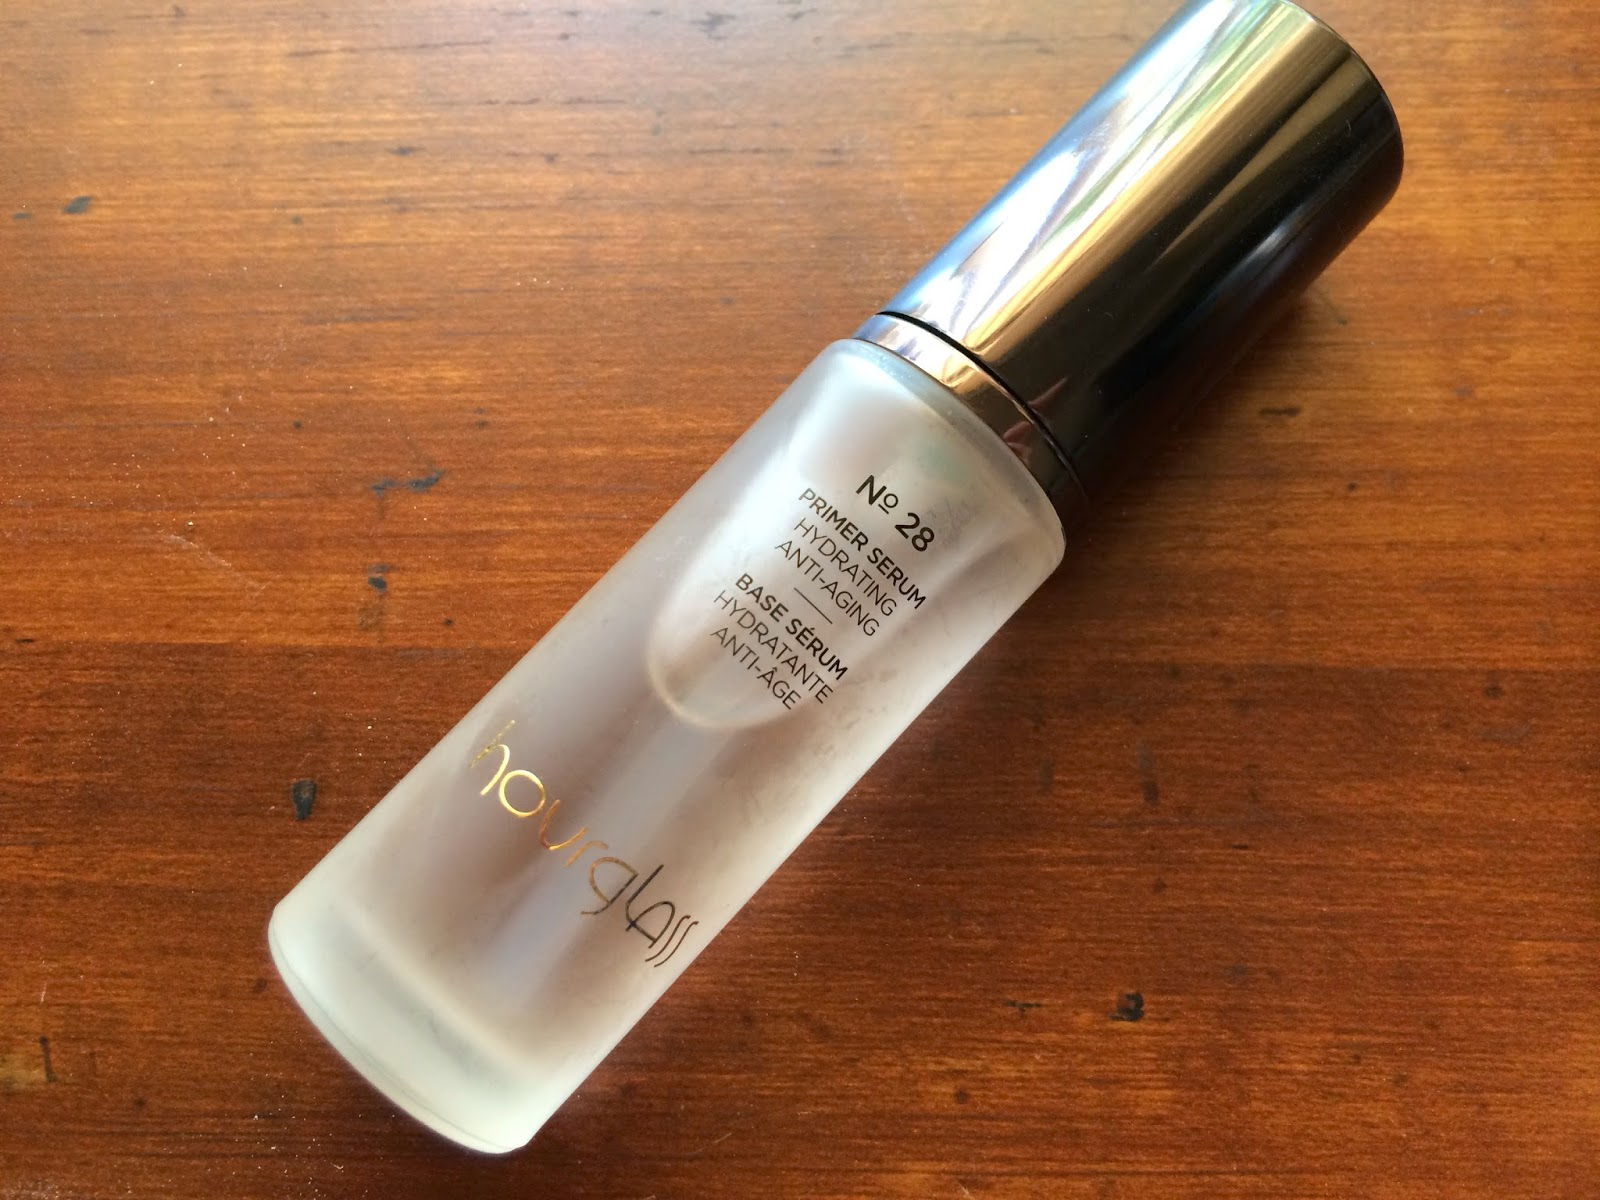 N° 28 Primer Serum by Hourglass #21